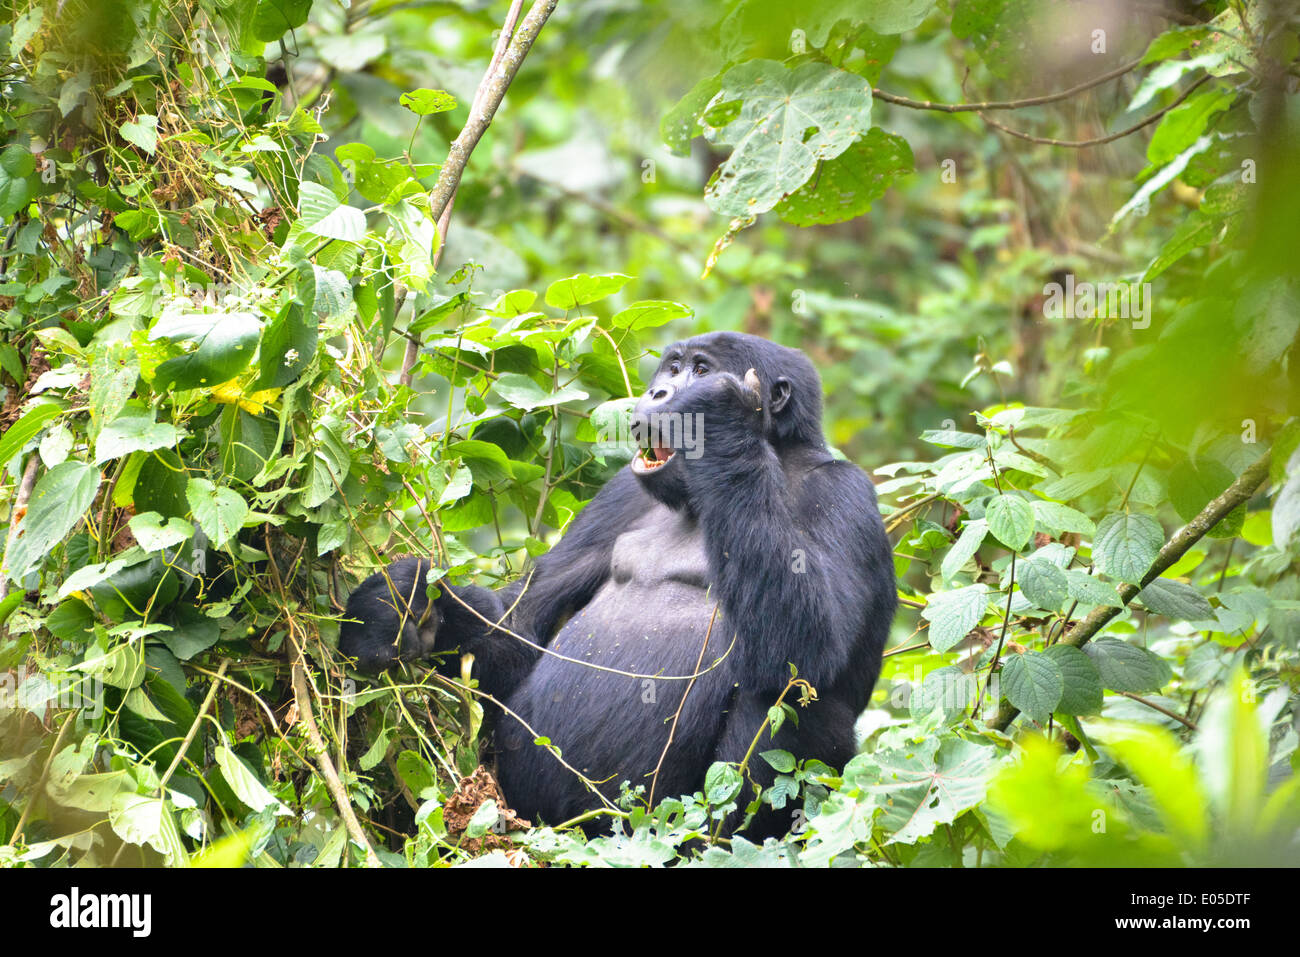 a male gorilla or so called silverback in the prime forest of Bwindi  national park in